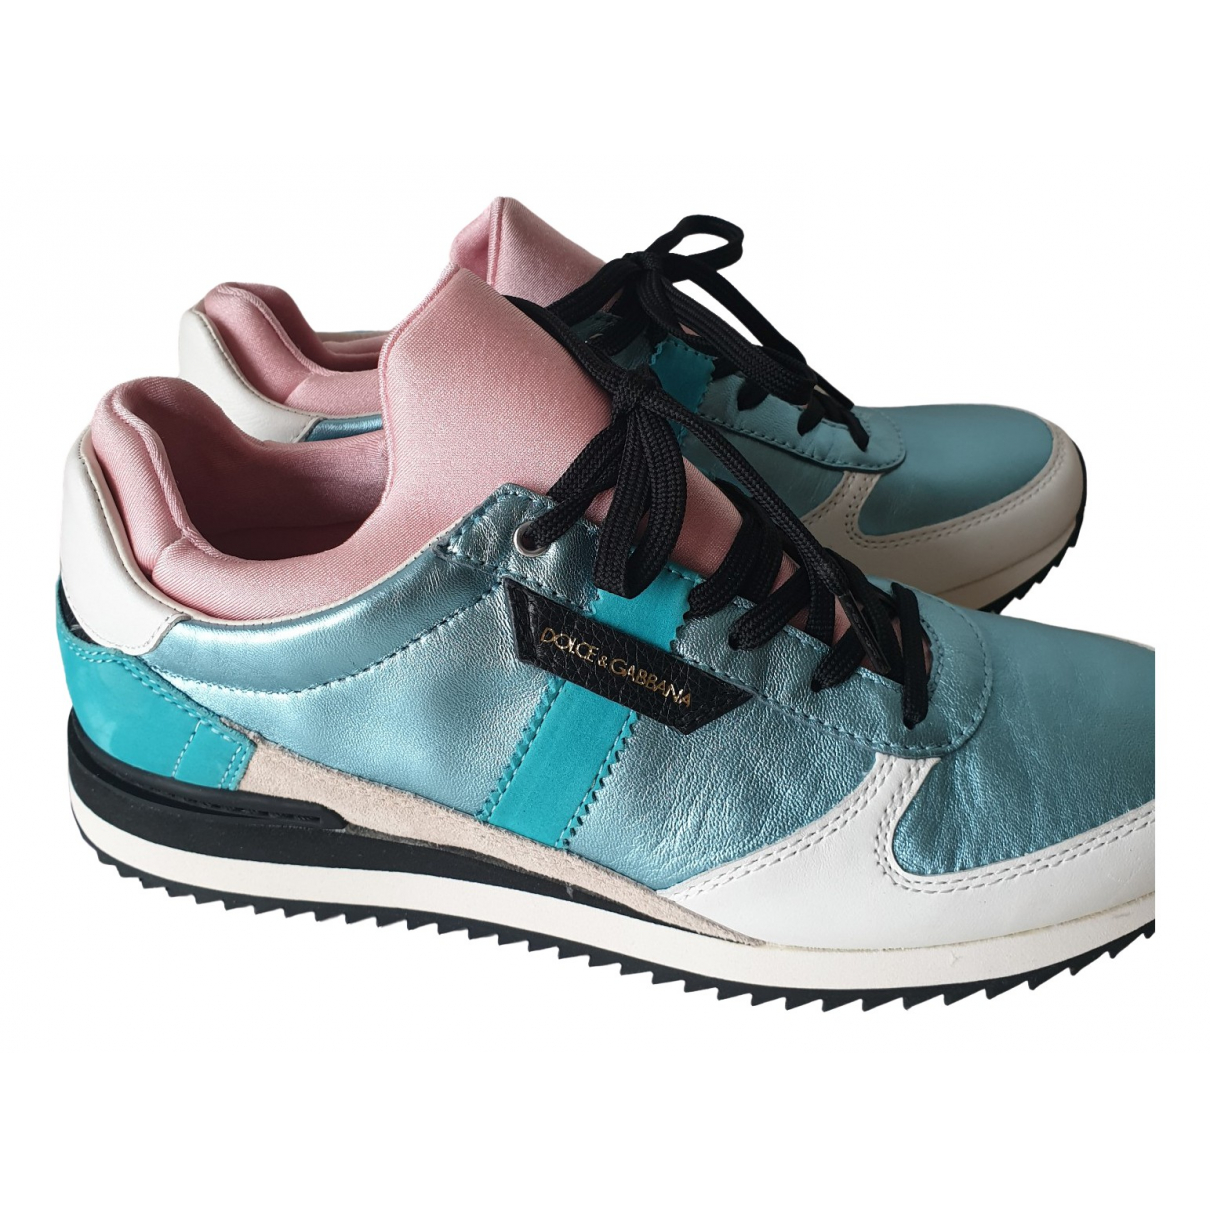 Dolce & Gabbana \N Multicolour Leather Trainers for Women 40 EU